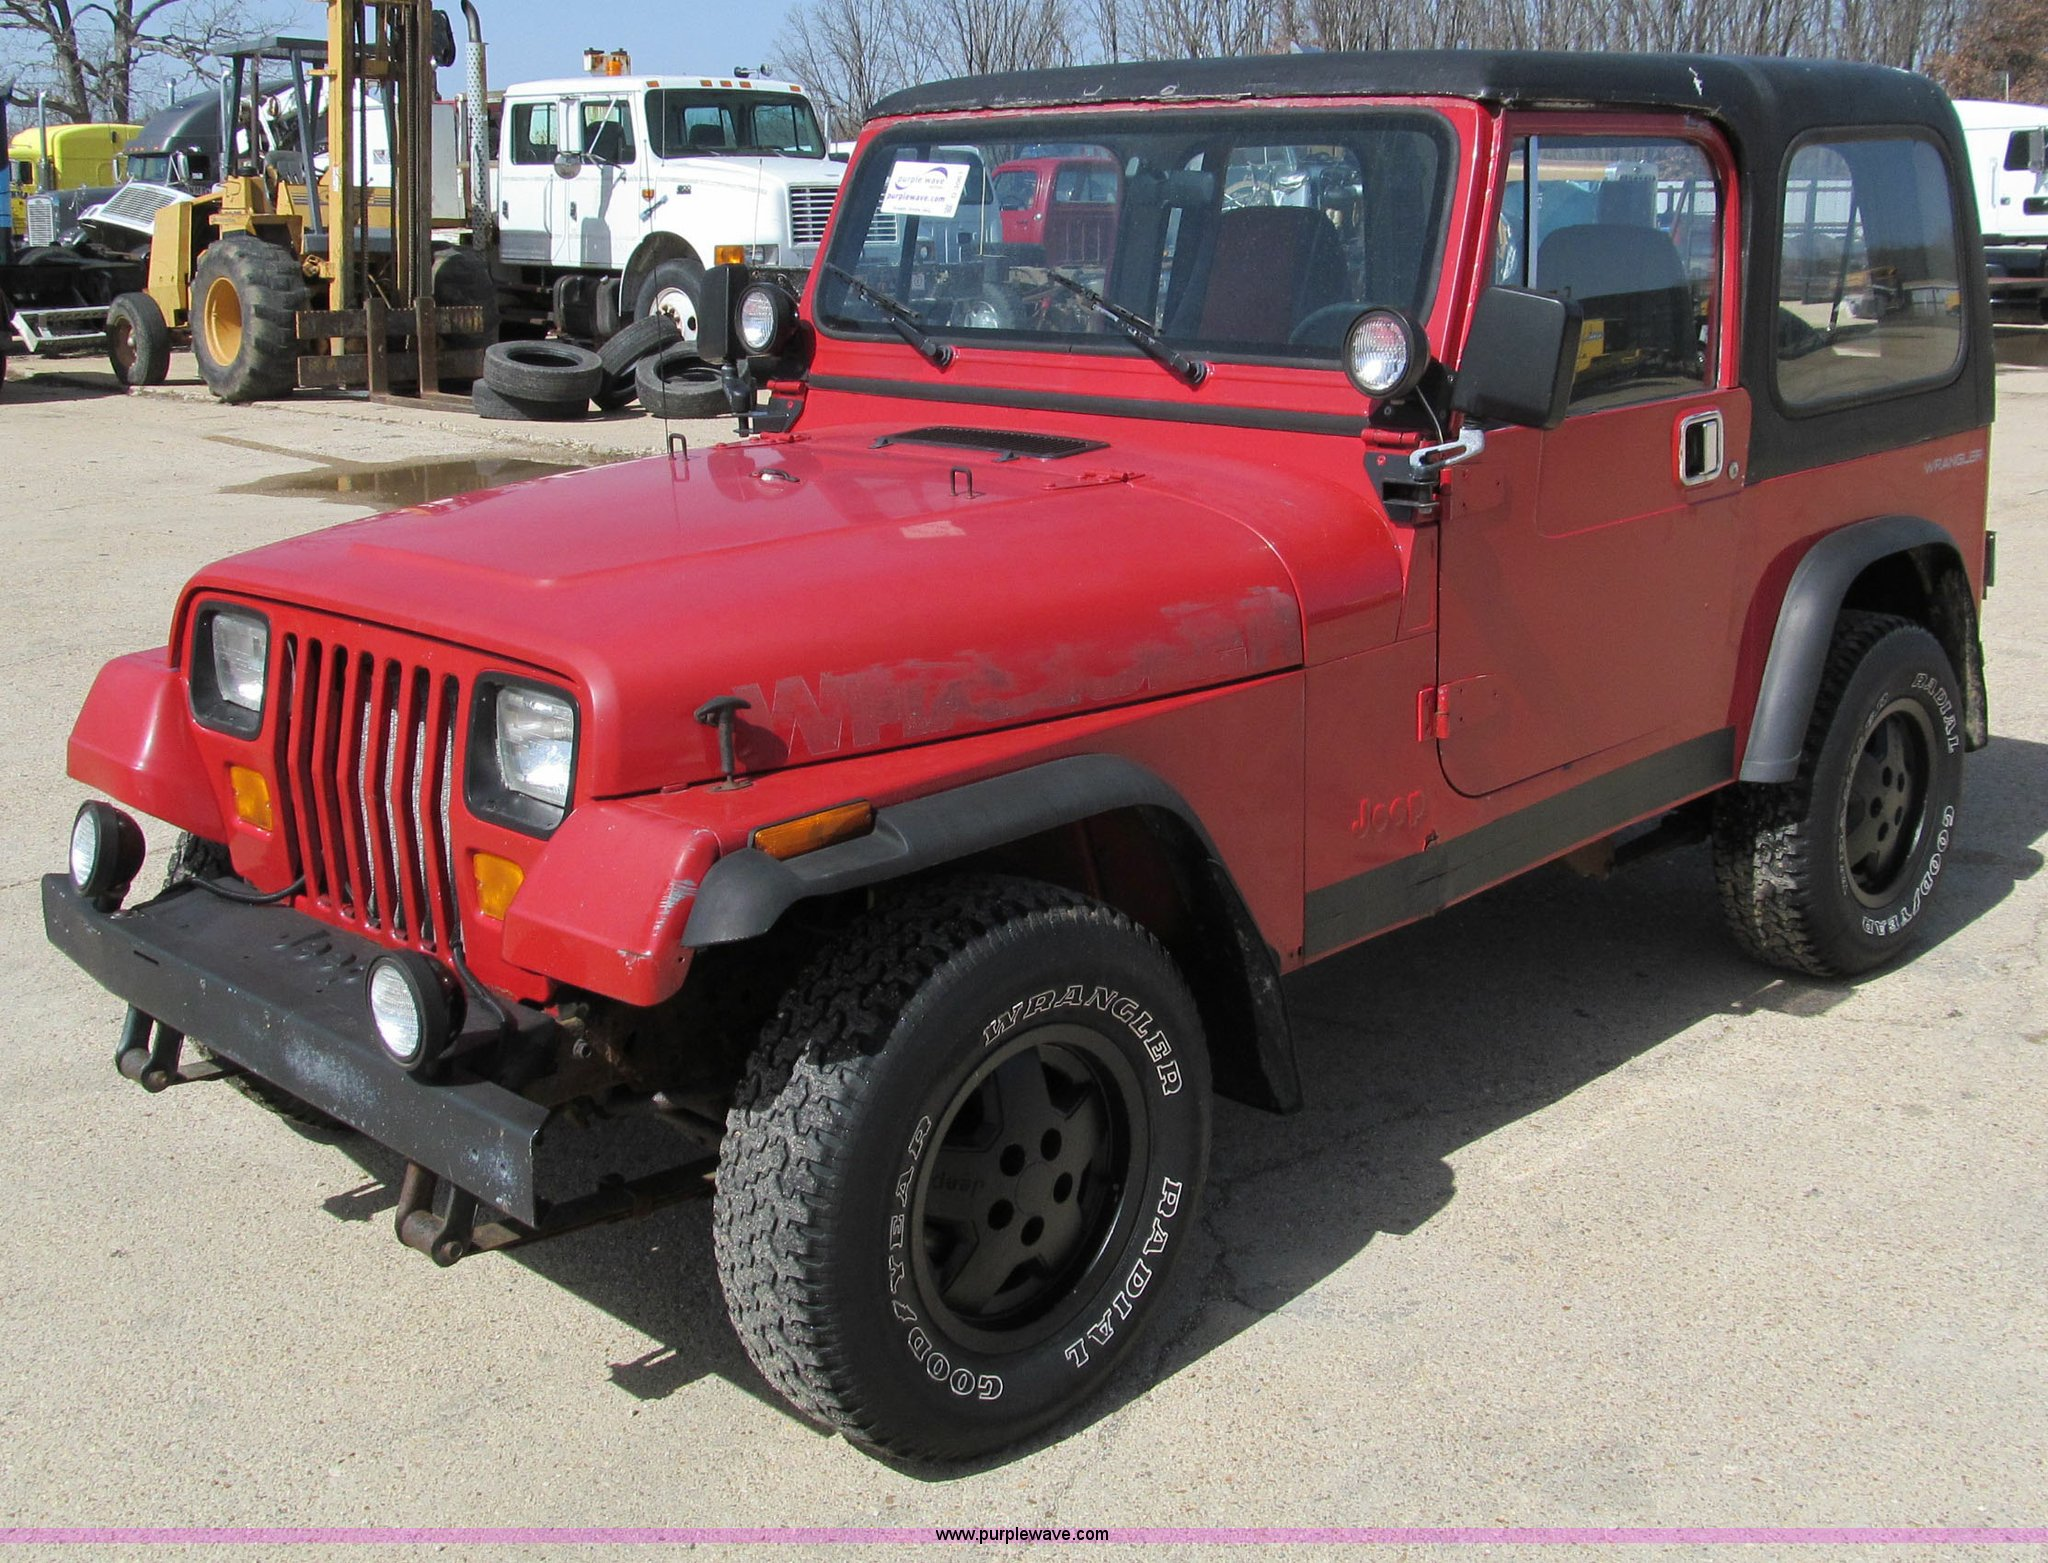 1995 Jeep Wrangler hard top SUV Item D3061